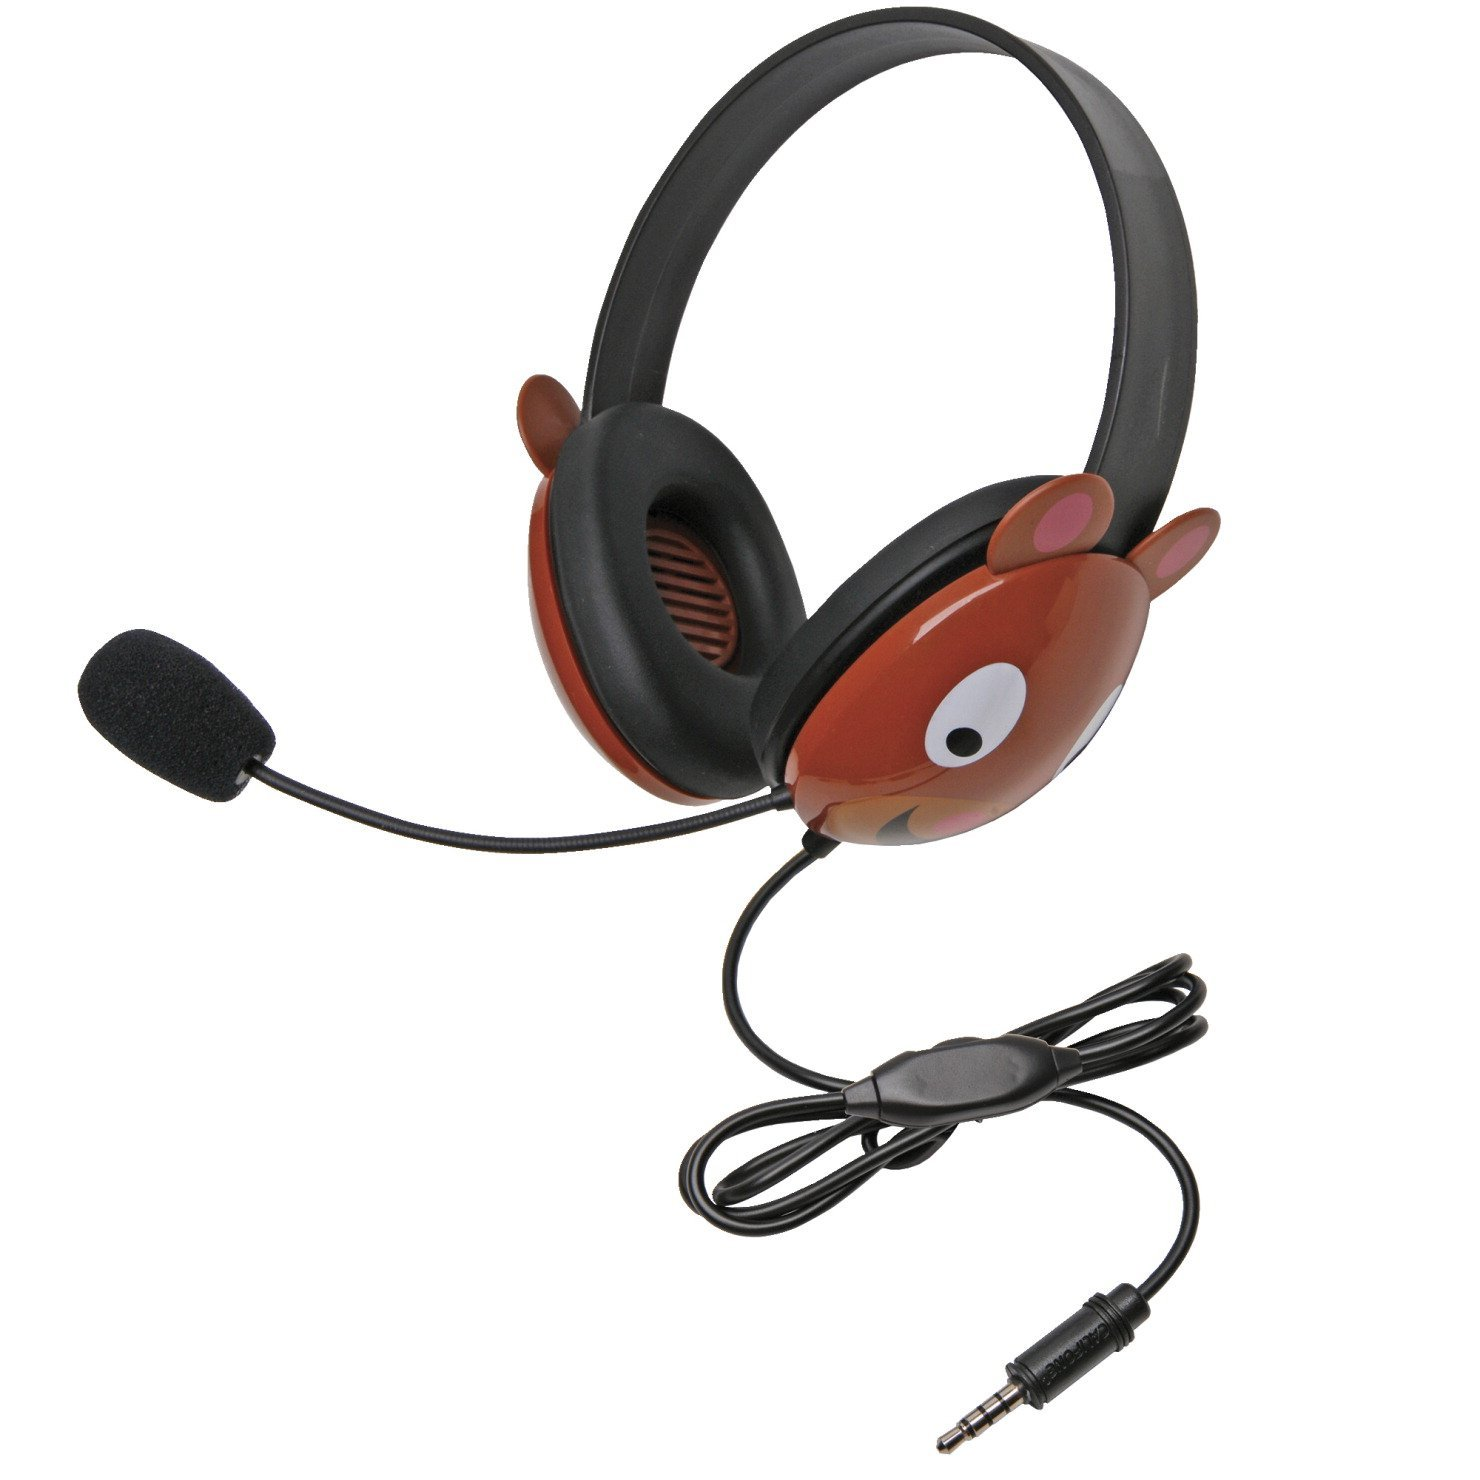 Califone 2810-TBE Listening First Bear Theme Stereo Headset with To Go Plug, For Use With MAC and Windows-Based Computers, iOS/Android-Based Smartphones and Tablets